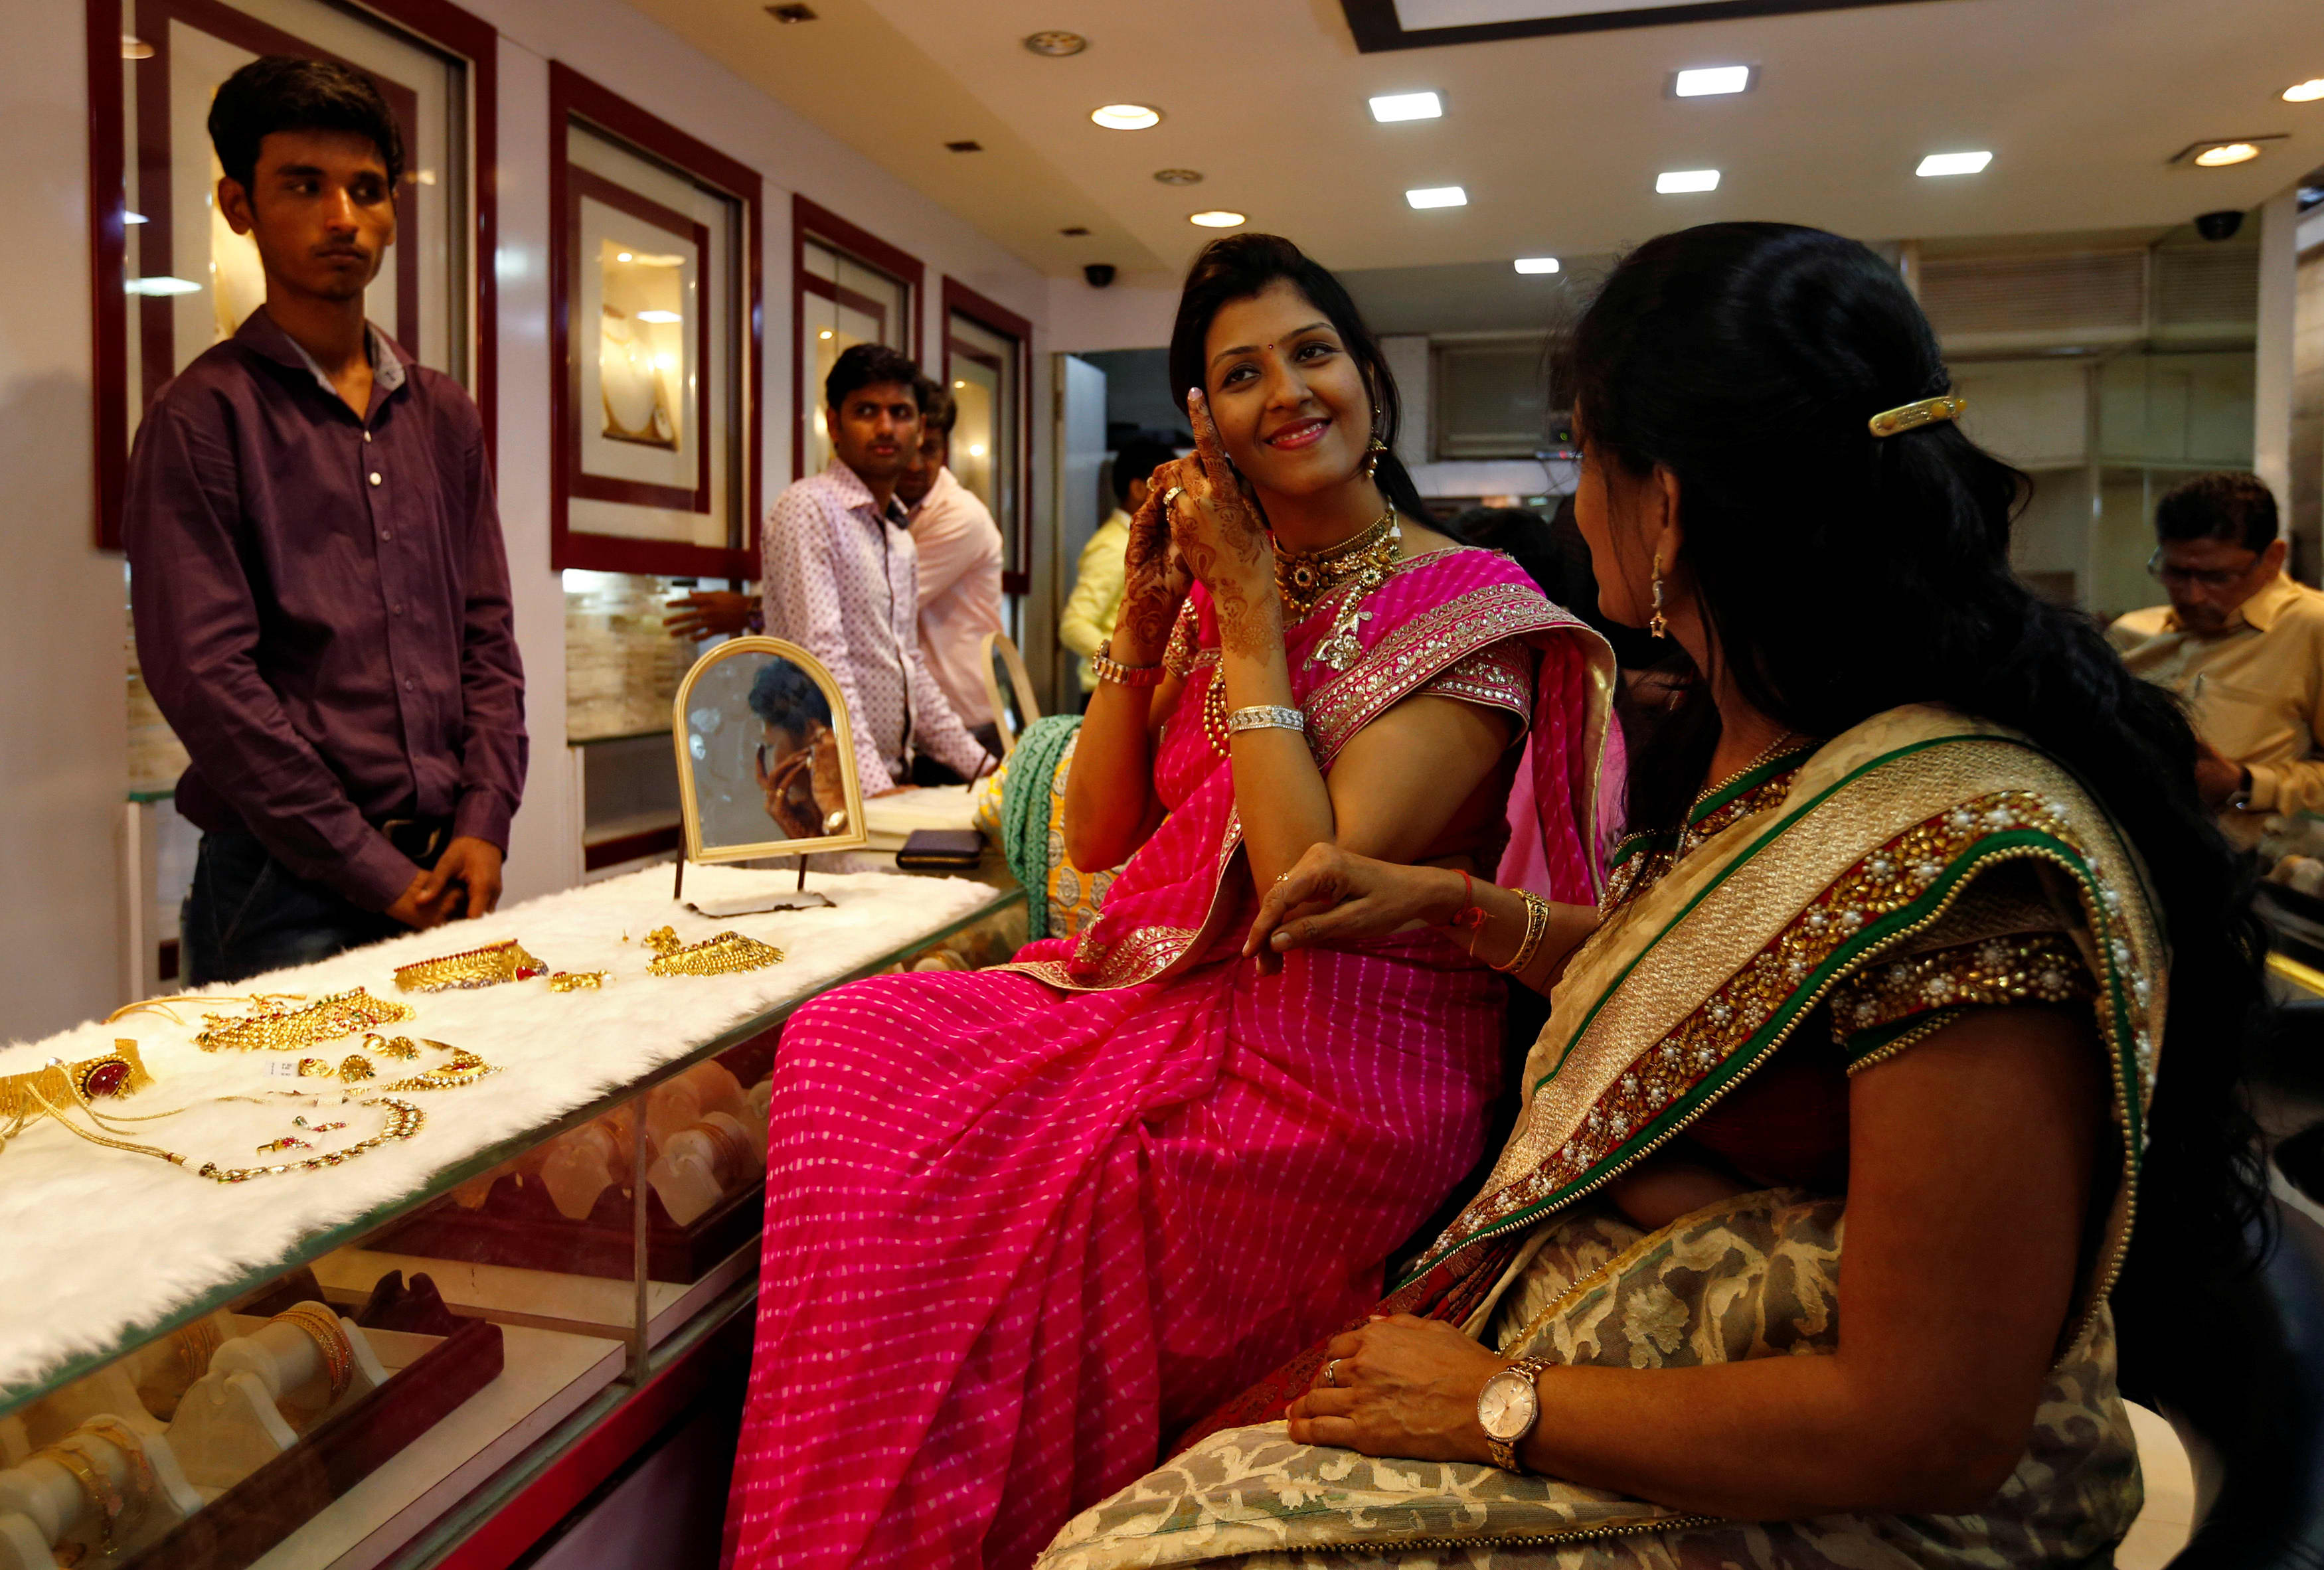 A woman tries a gold earring at a jewellery showroom in Mumbai, India on October 28, 2016.